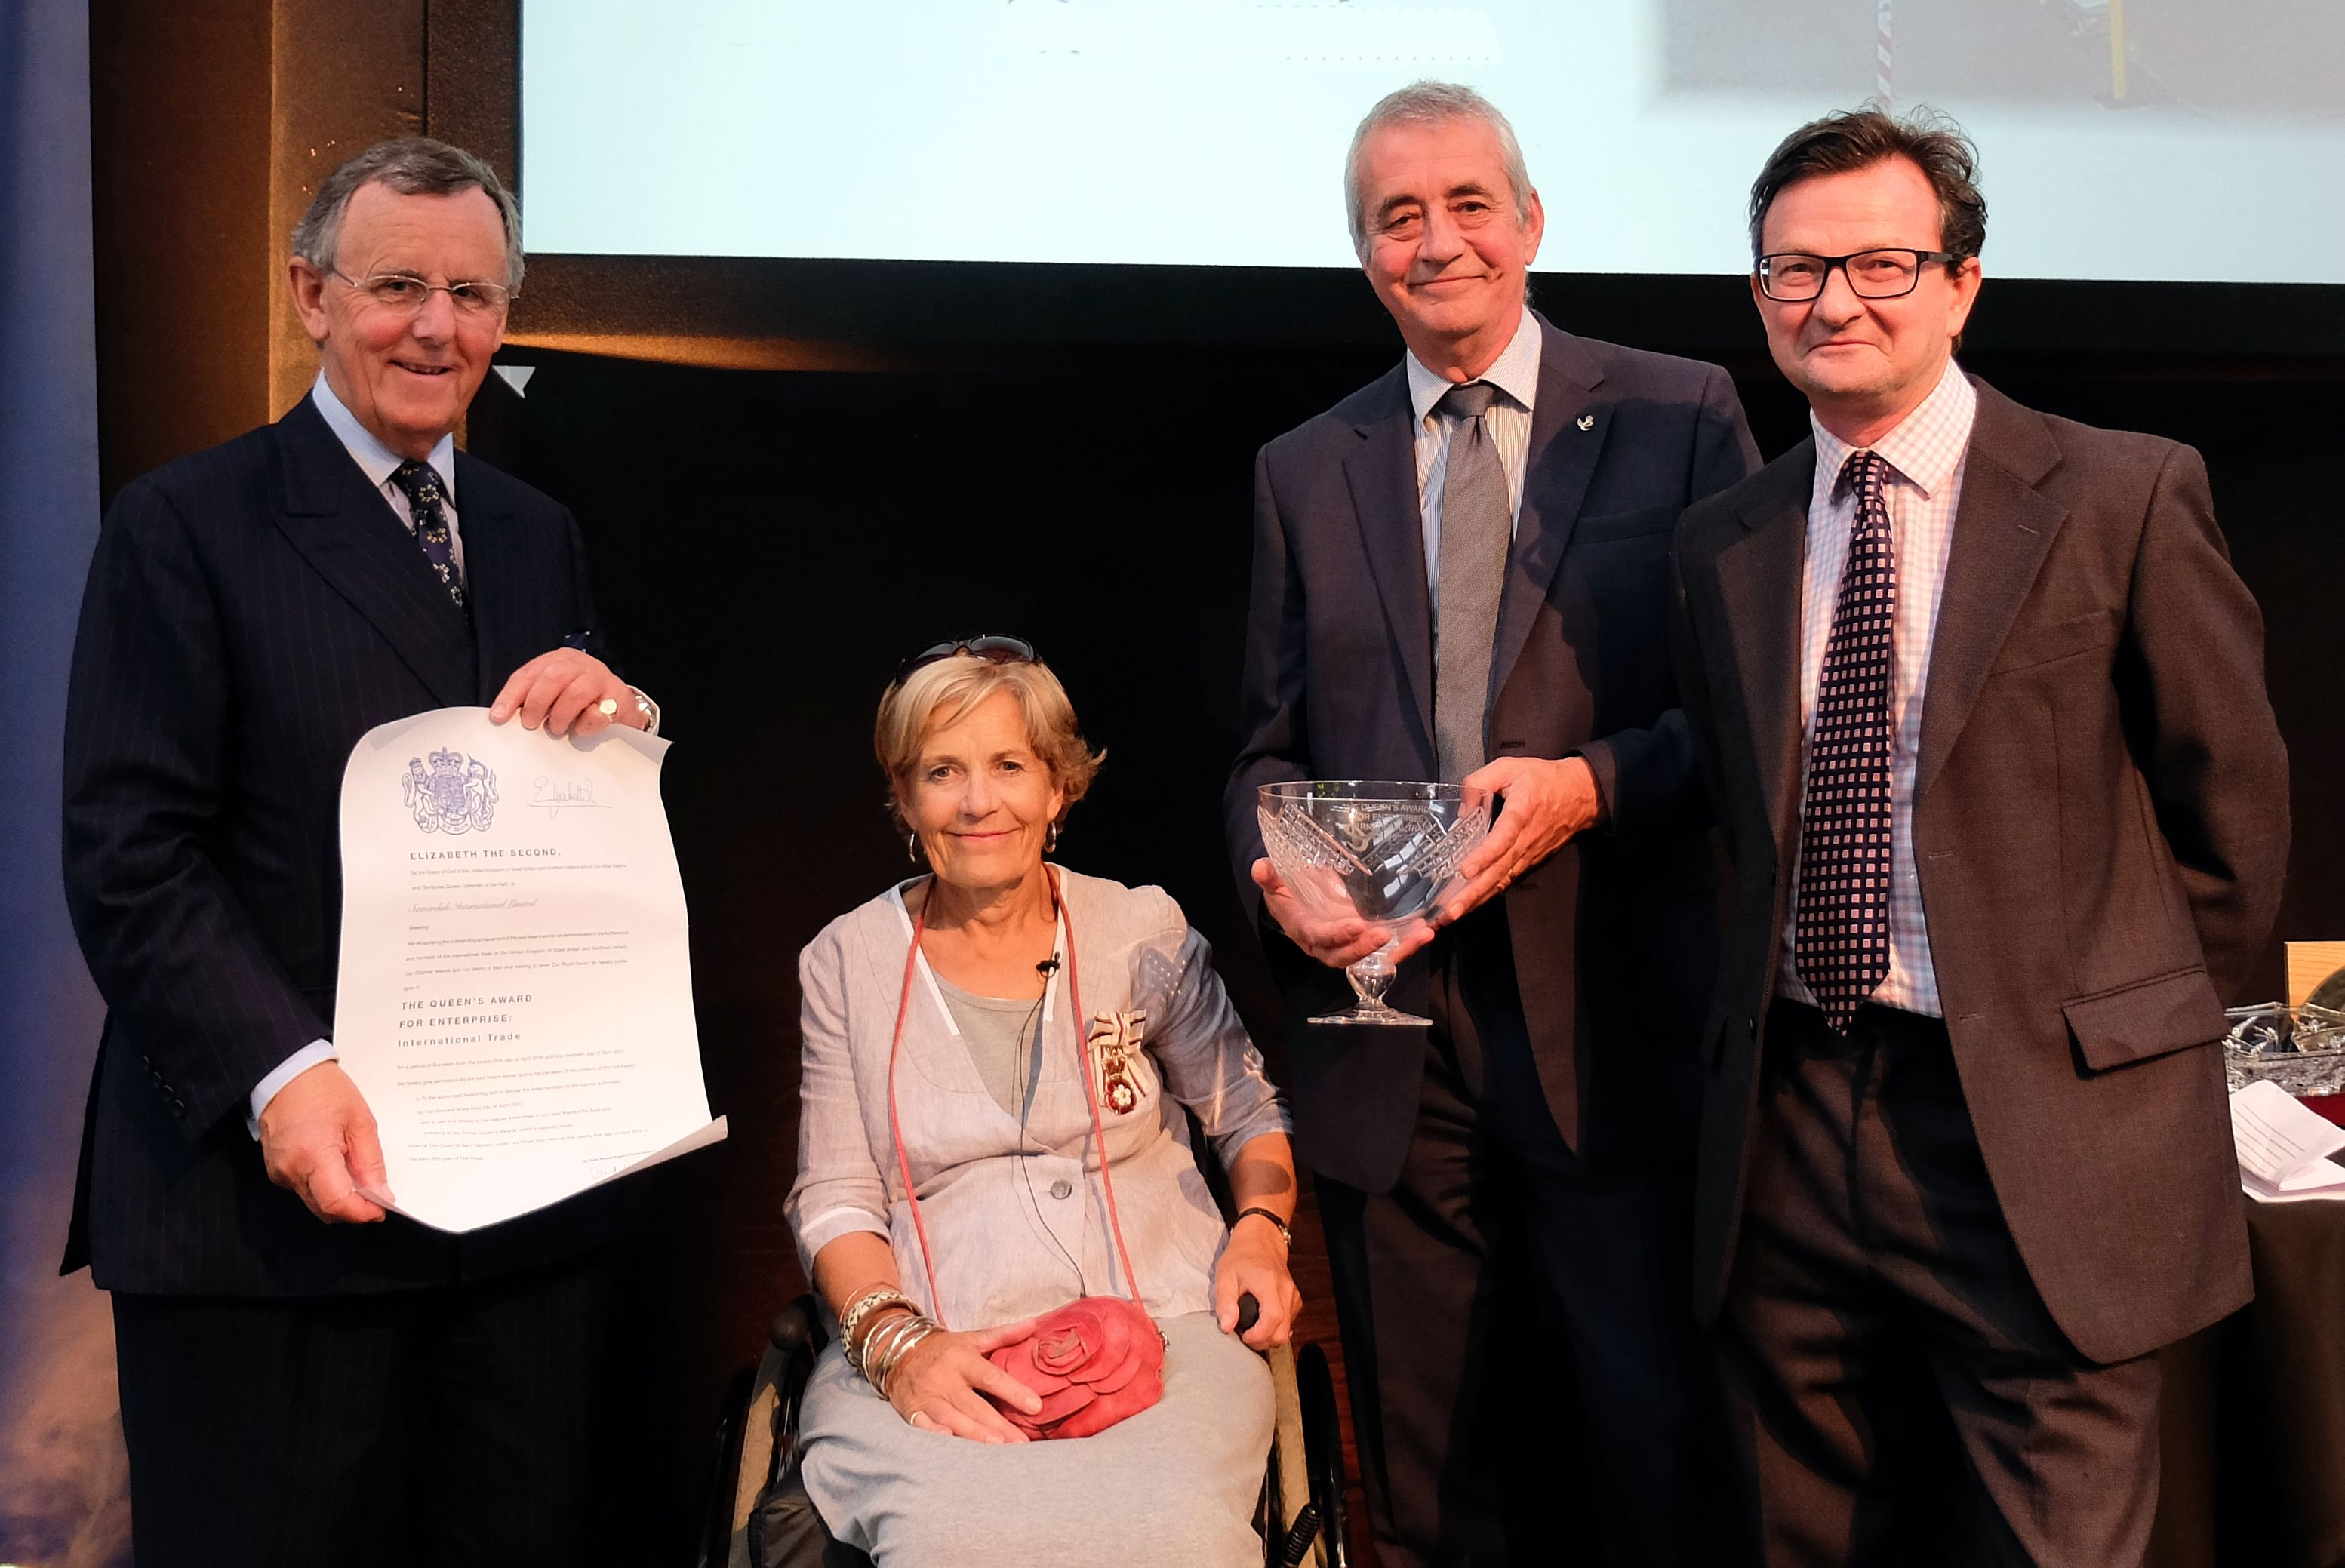 Leading exporter of British cheese Somerdale international presented with Queens Award